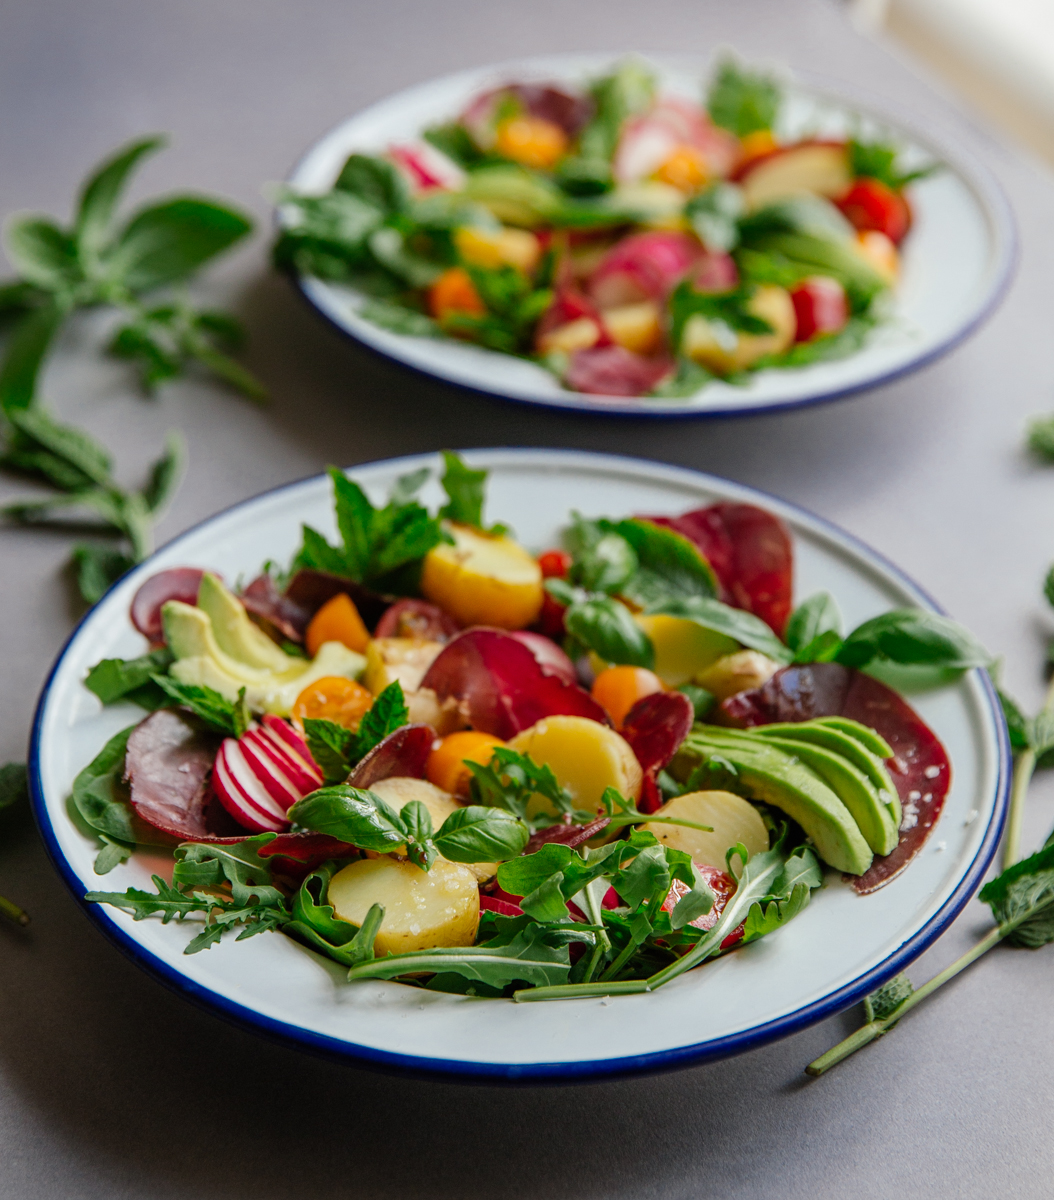 Summer potato salad with bresaola, tomatoes, radishes & avocado